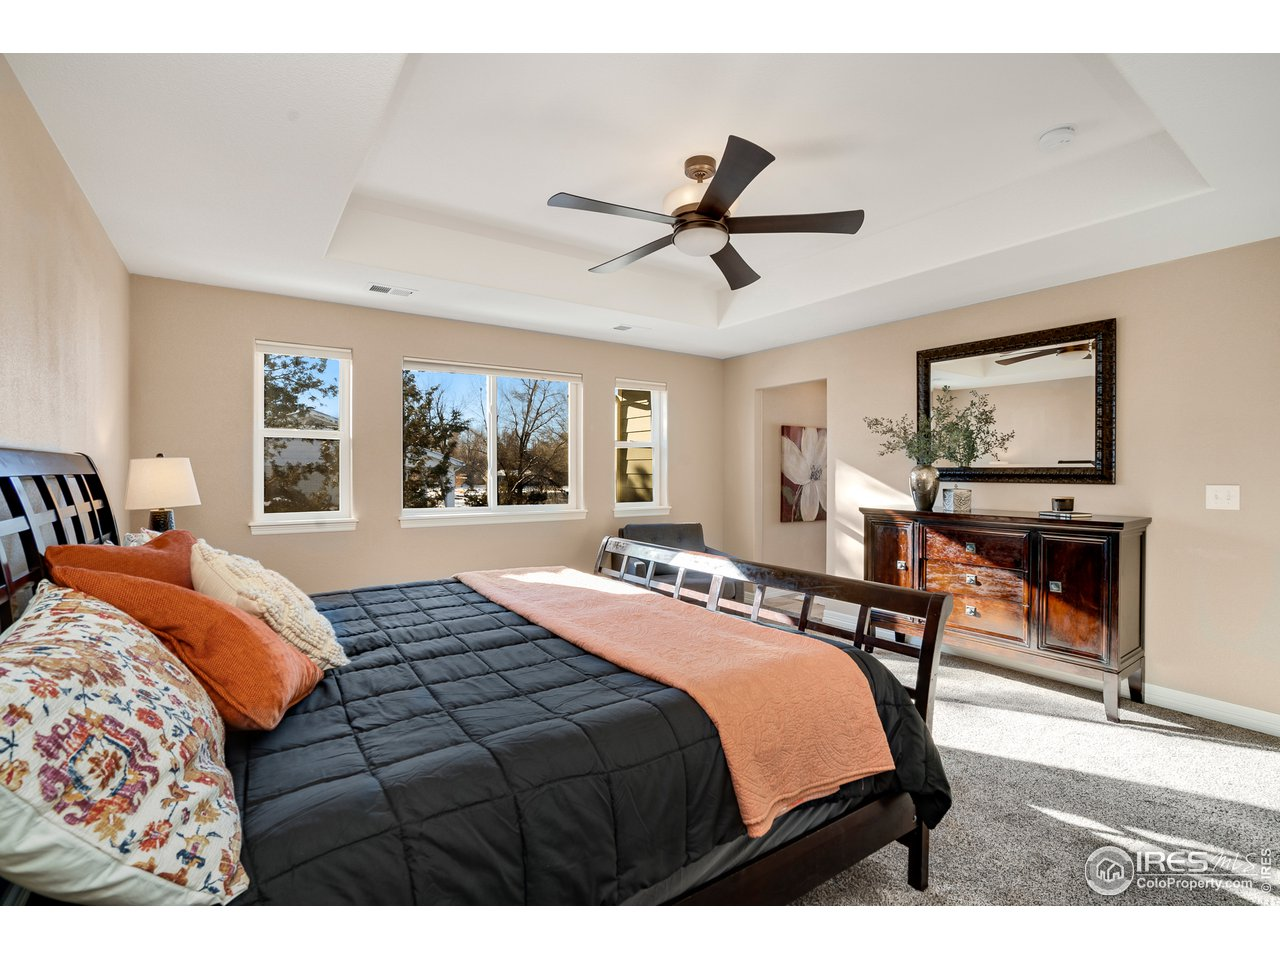 Master bedroom with spectacular ensuite